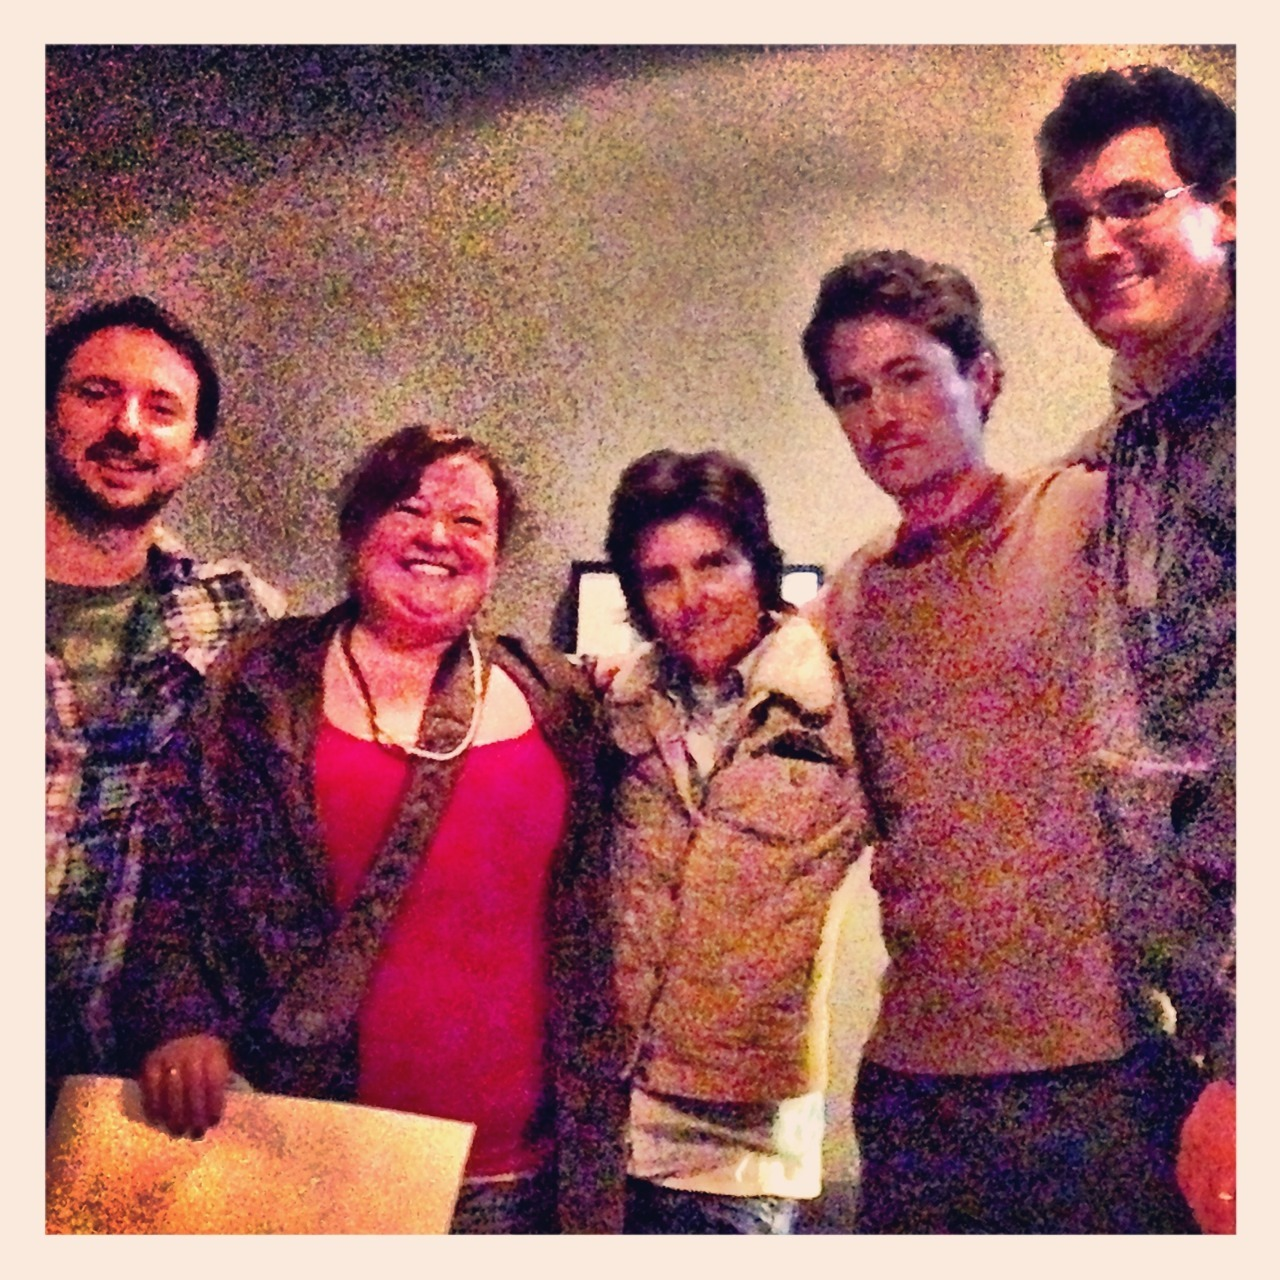 In which I get to meet the wonderful Tig Notaro and the crew from Professor Blastoff (Kyle Dunigan, David Huntsberger and Aaron Burrell).